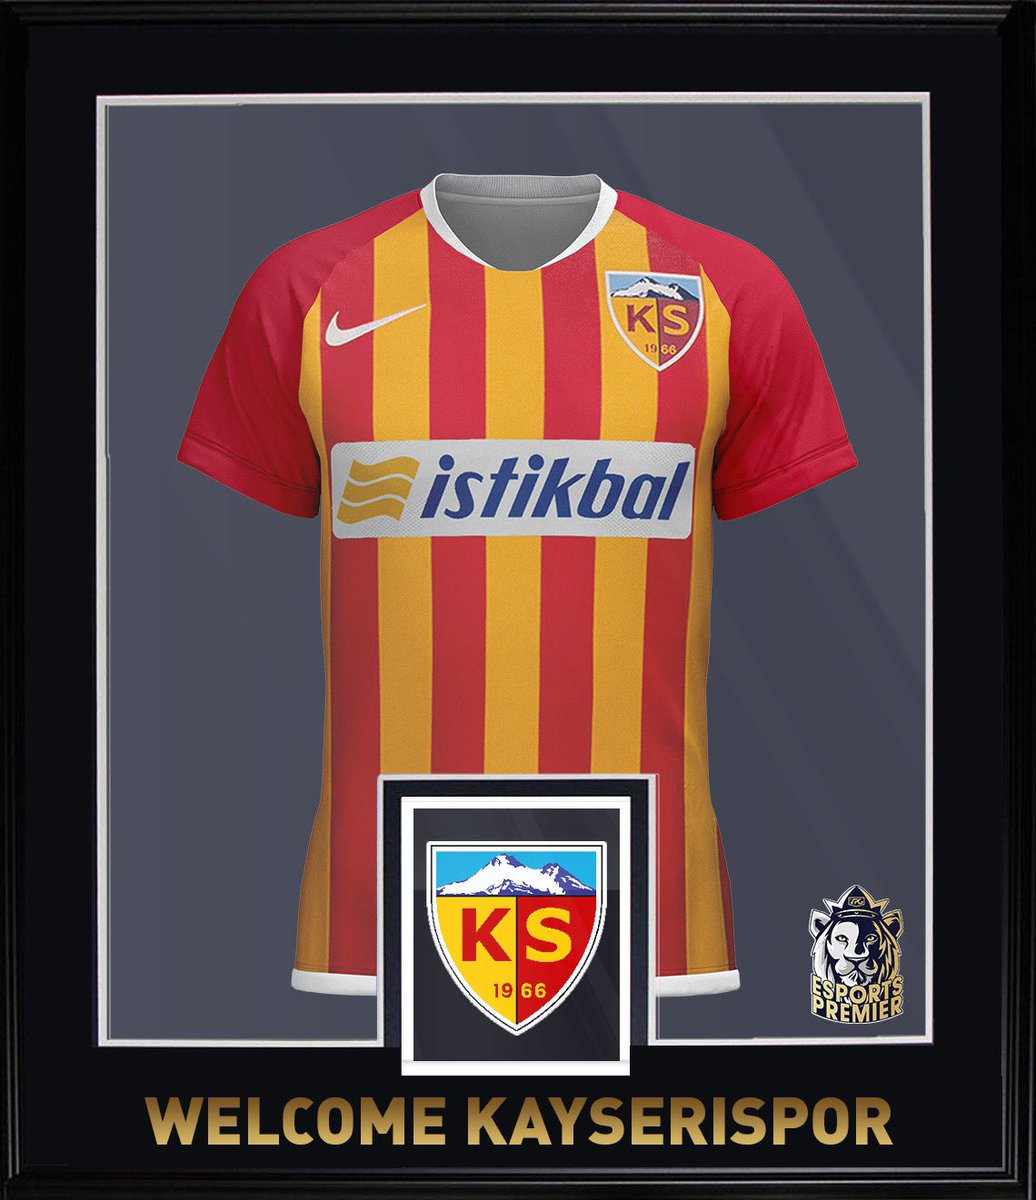 🤩 Welcome @KayserisporES into the @VPGPremier !   🌍 Nationality: 🇹🇷   🏆 Survived relegation last season, prepared well for the new season with many new faces. Kayserispor are ready for action!   #Kayserispor #FIFA21 #ProClubs #VPG https://t.co/bjNj7mkX1c